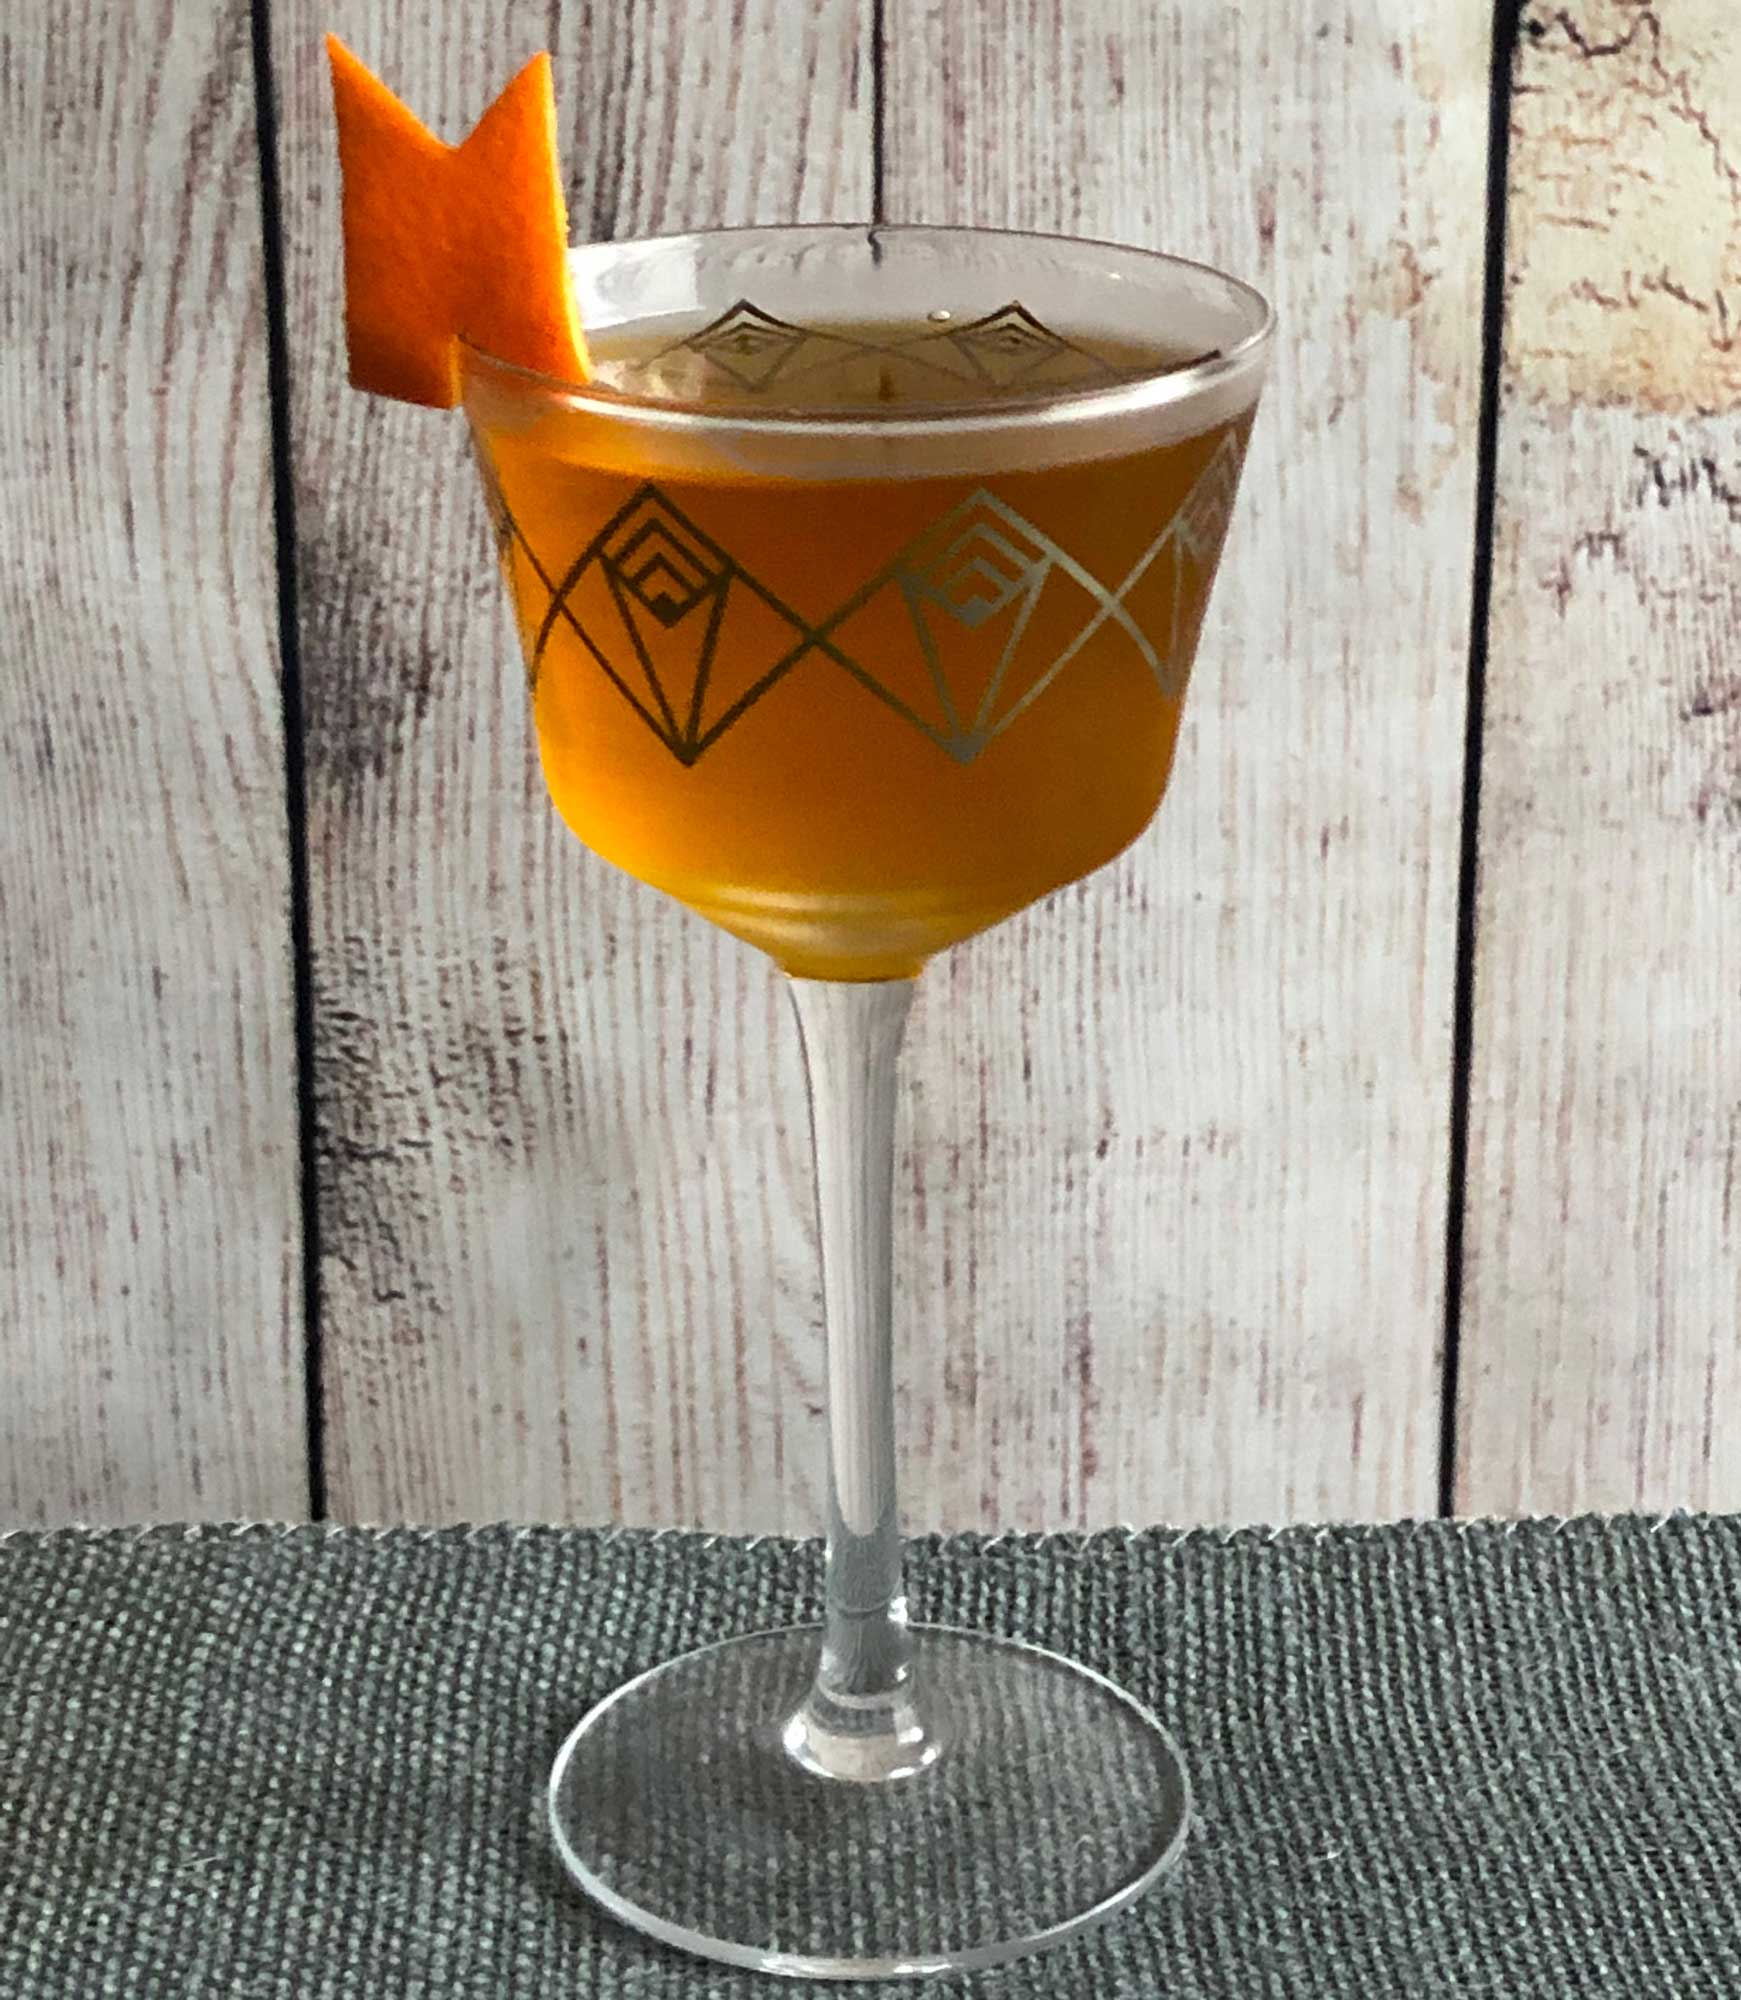 An example of the Accidental Cocktail, the mixed drink (cocktail), adapted from the Occidental, PDT, New York City, featuring Batavia Arrack van Oosten, orange-flavored liqueur, Cardamaro Vino Amaro, and Elisir Novasalus; photo by Lee Edwards